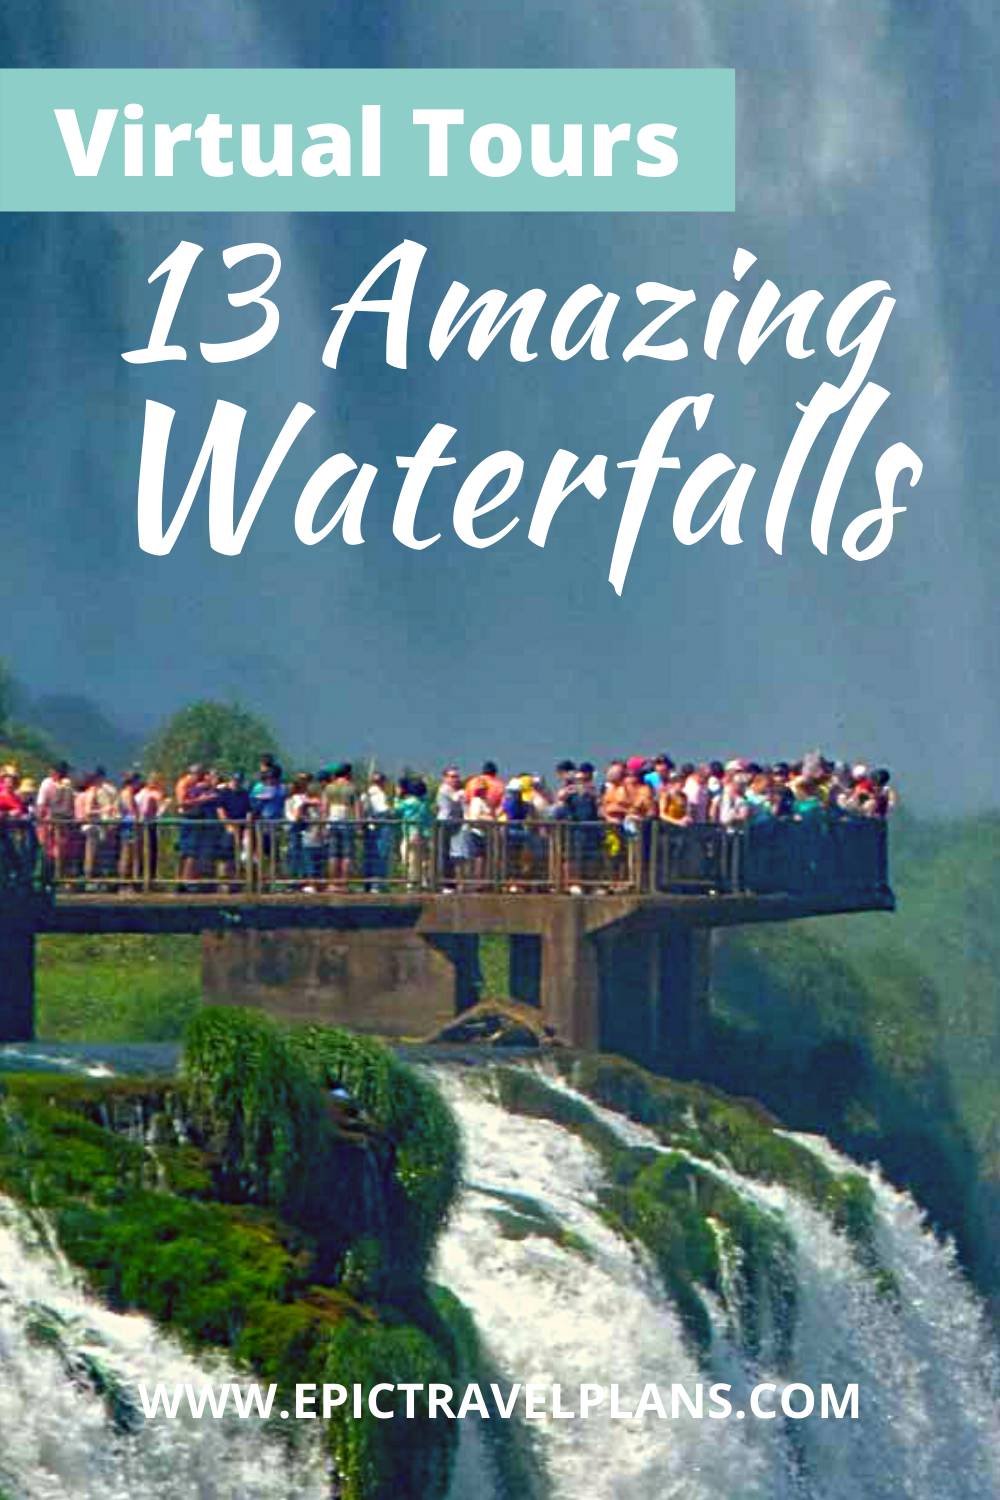 Best virtual tours of waterfalls